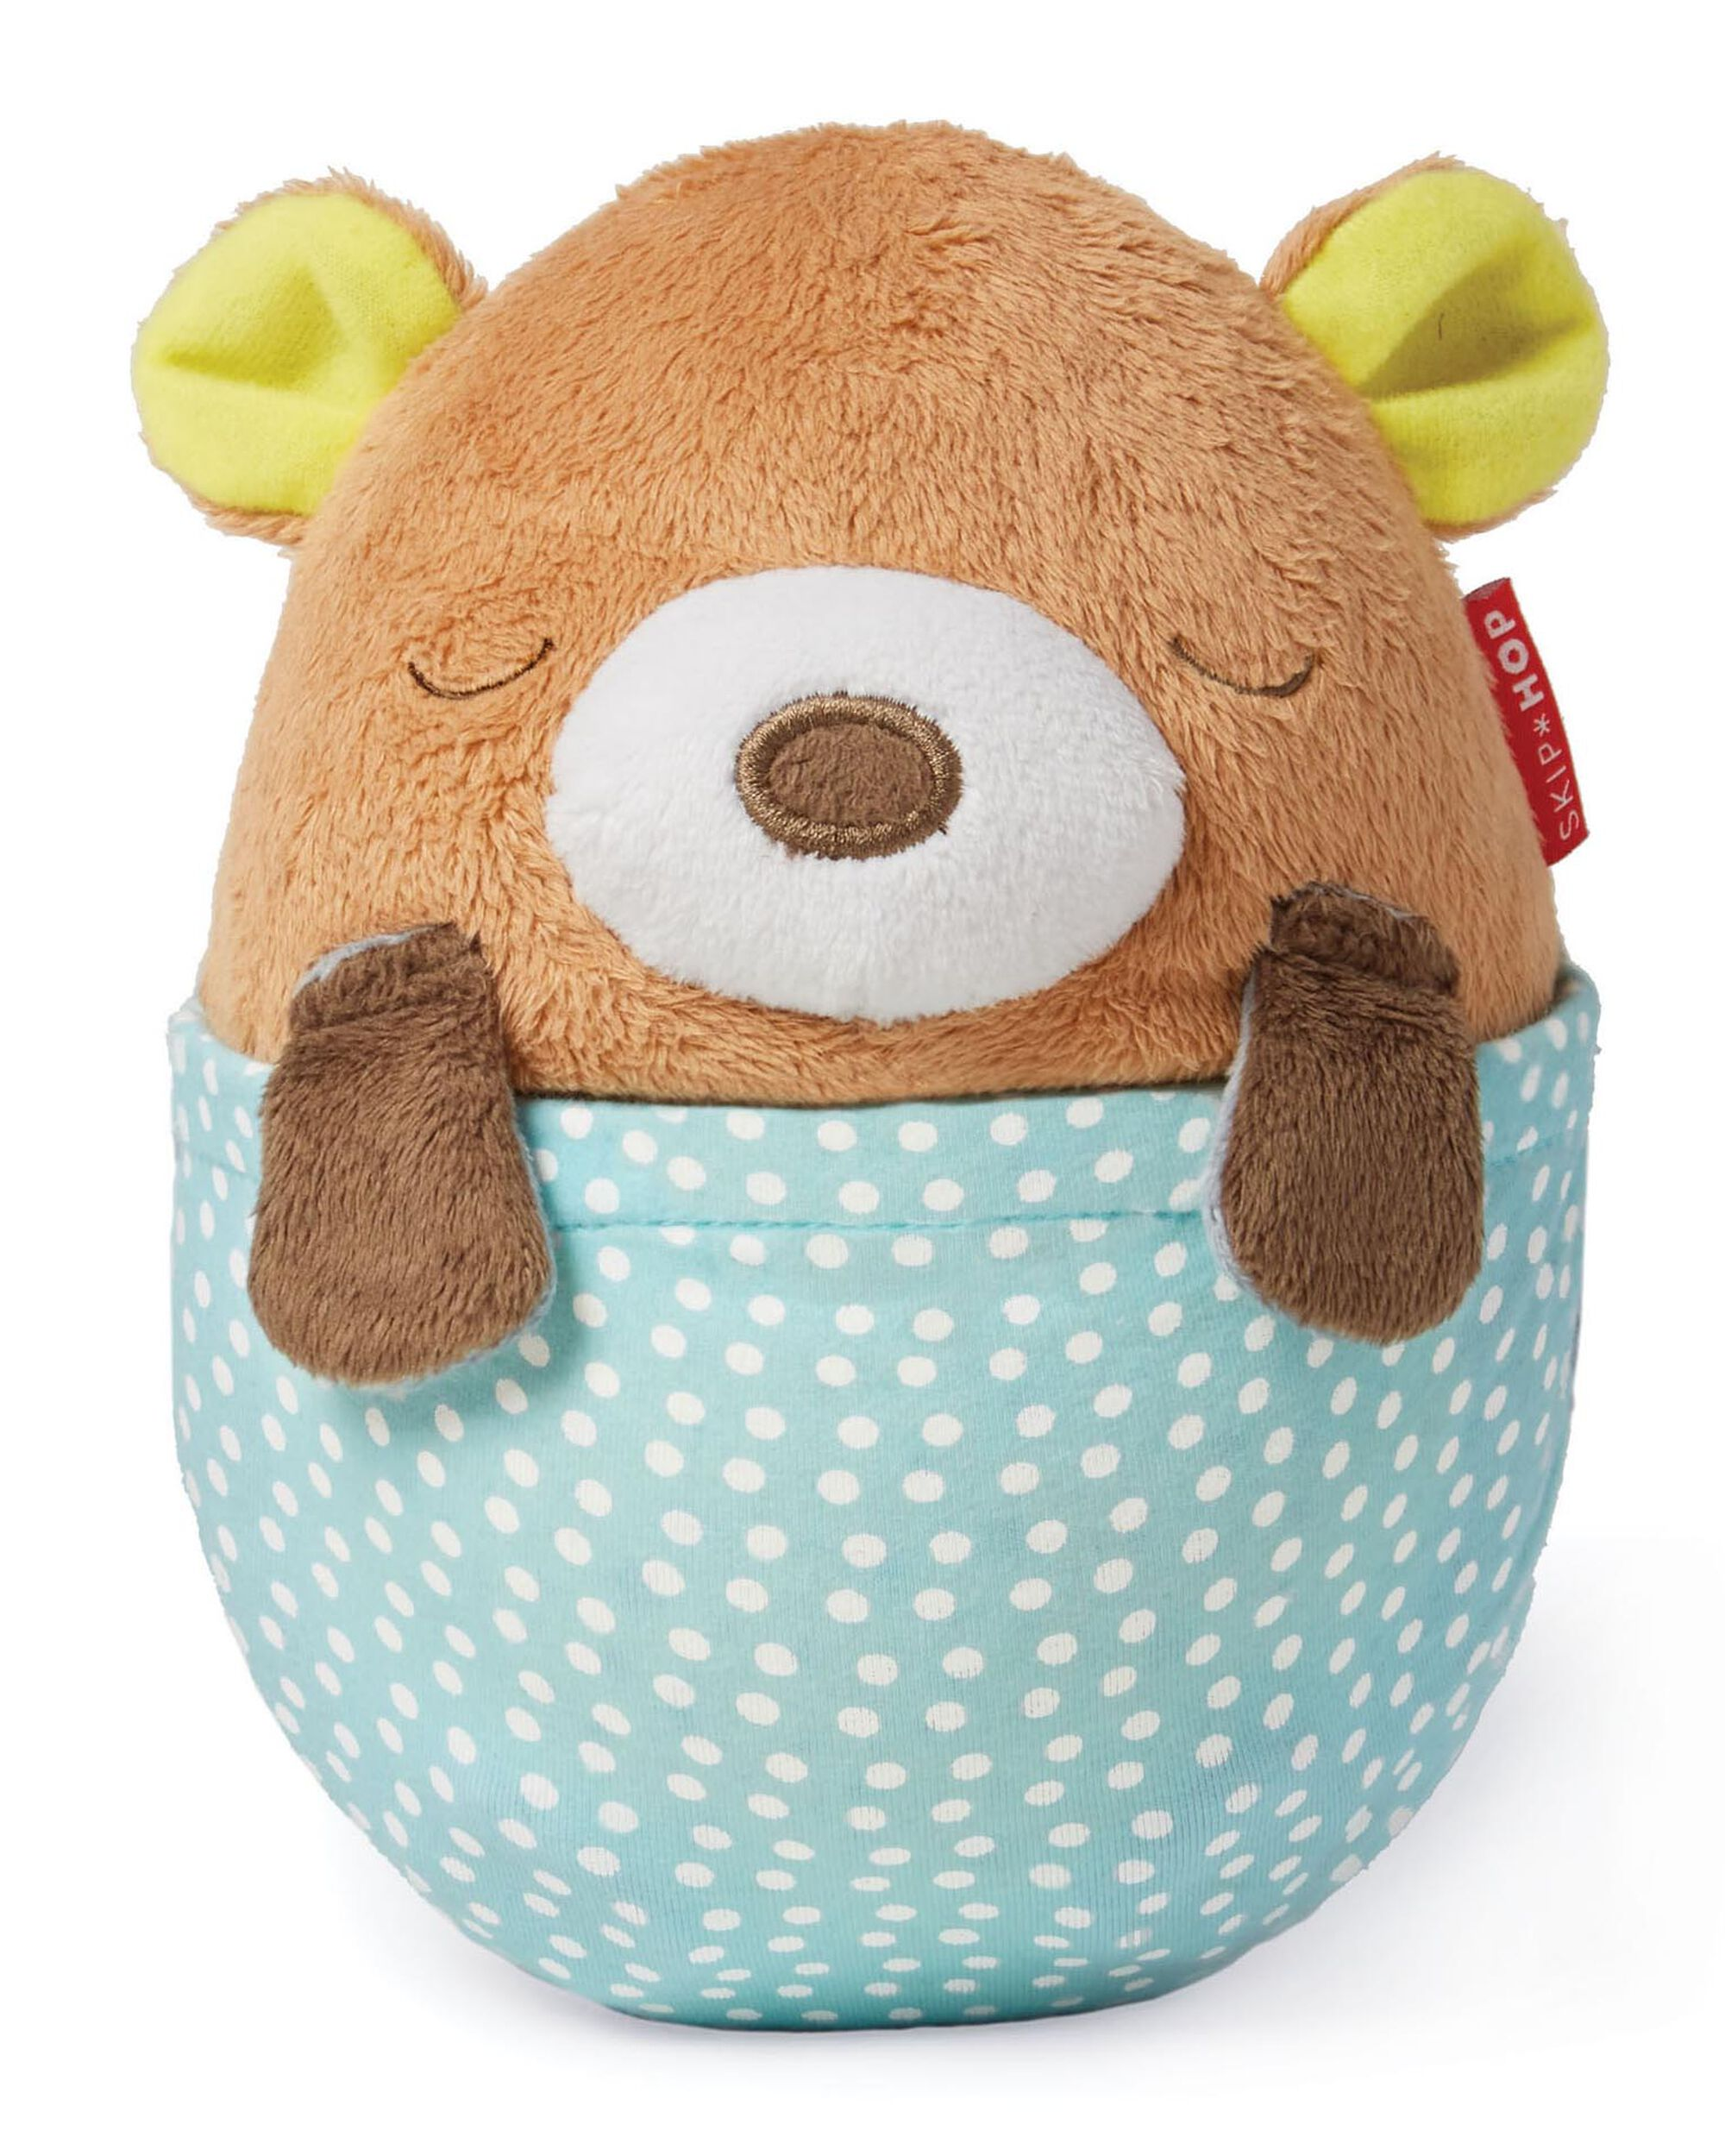 Moonlight & Melodies Hug Me Projection Baby Soother | Skiphop.com